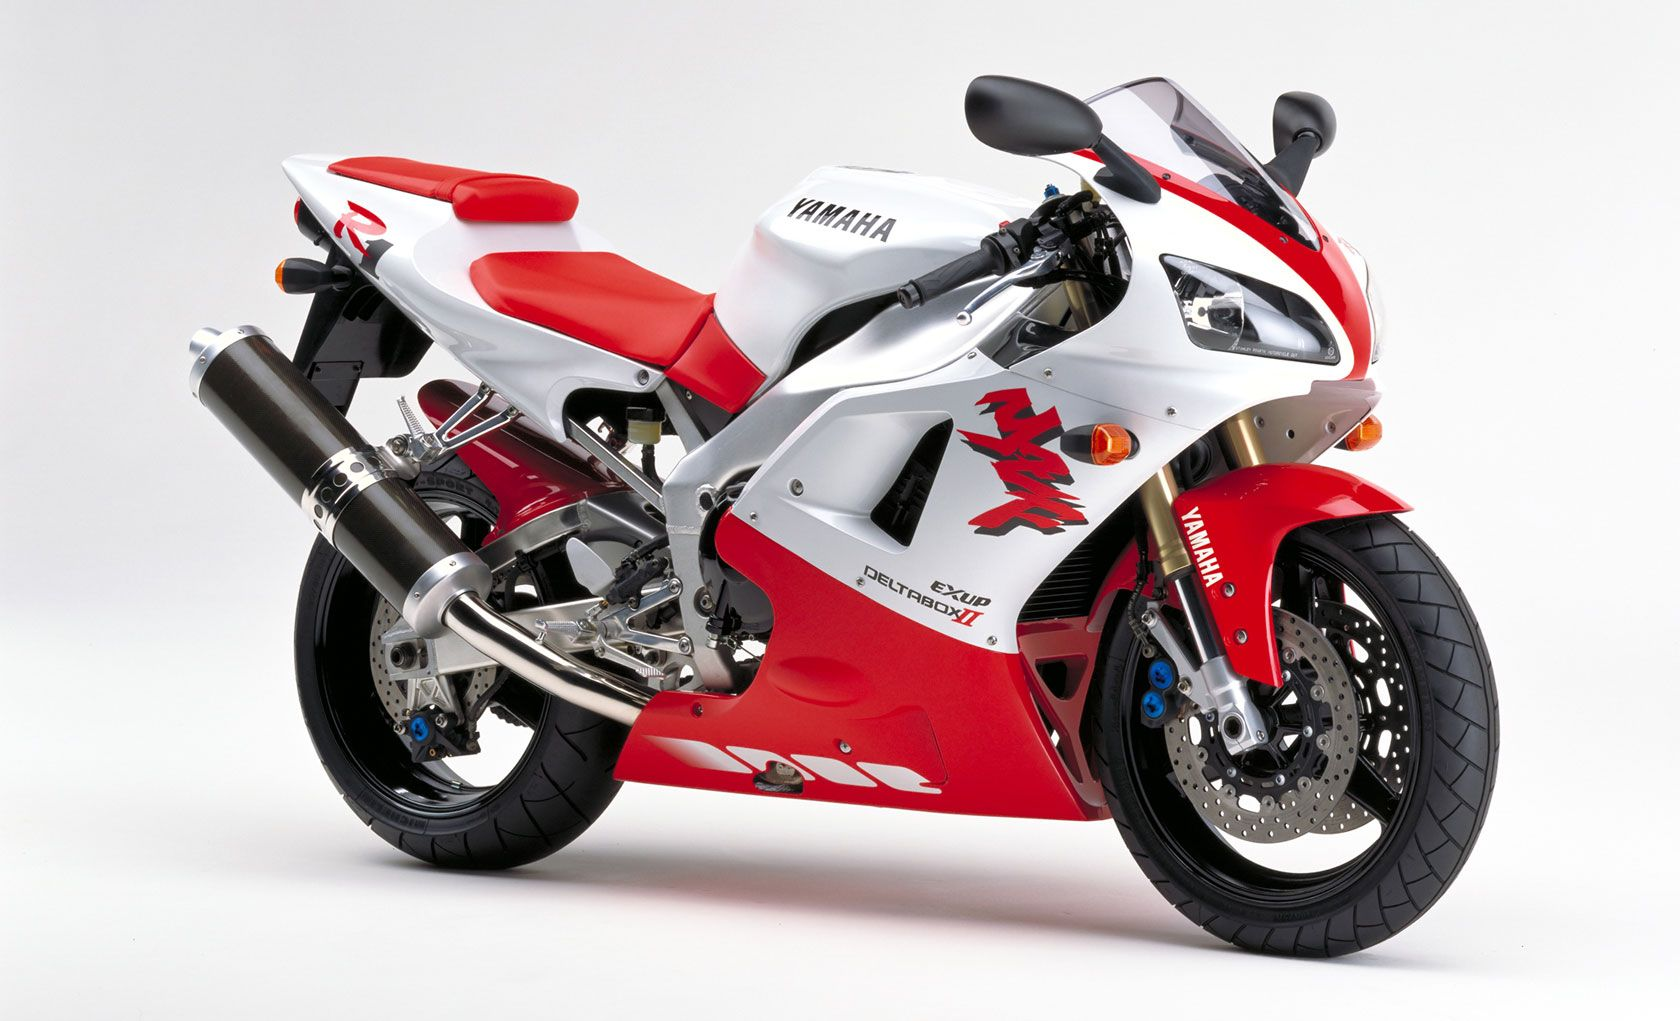 Yamaha YZF-R1 1998-1999 - Specifications - Wings and Gears